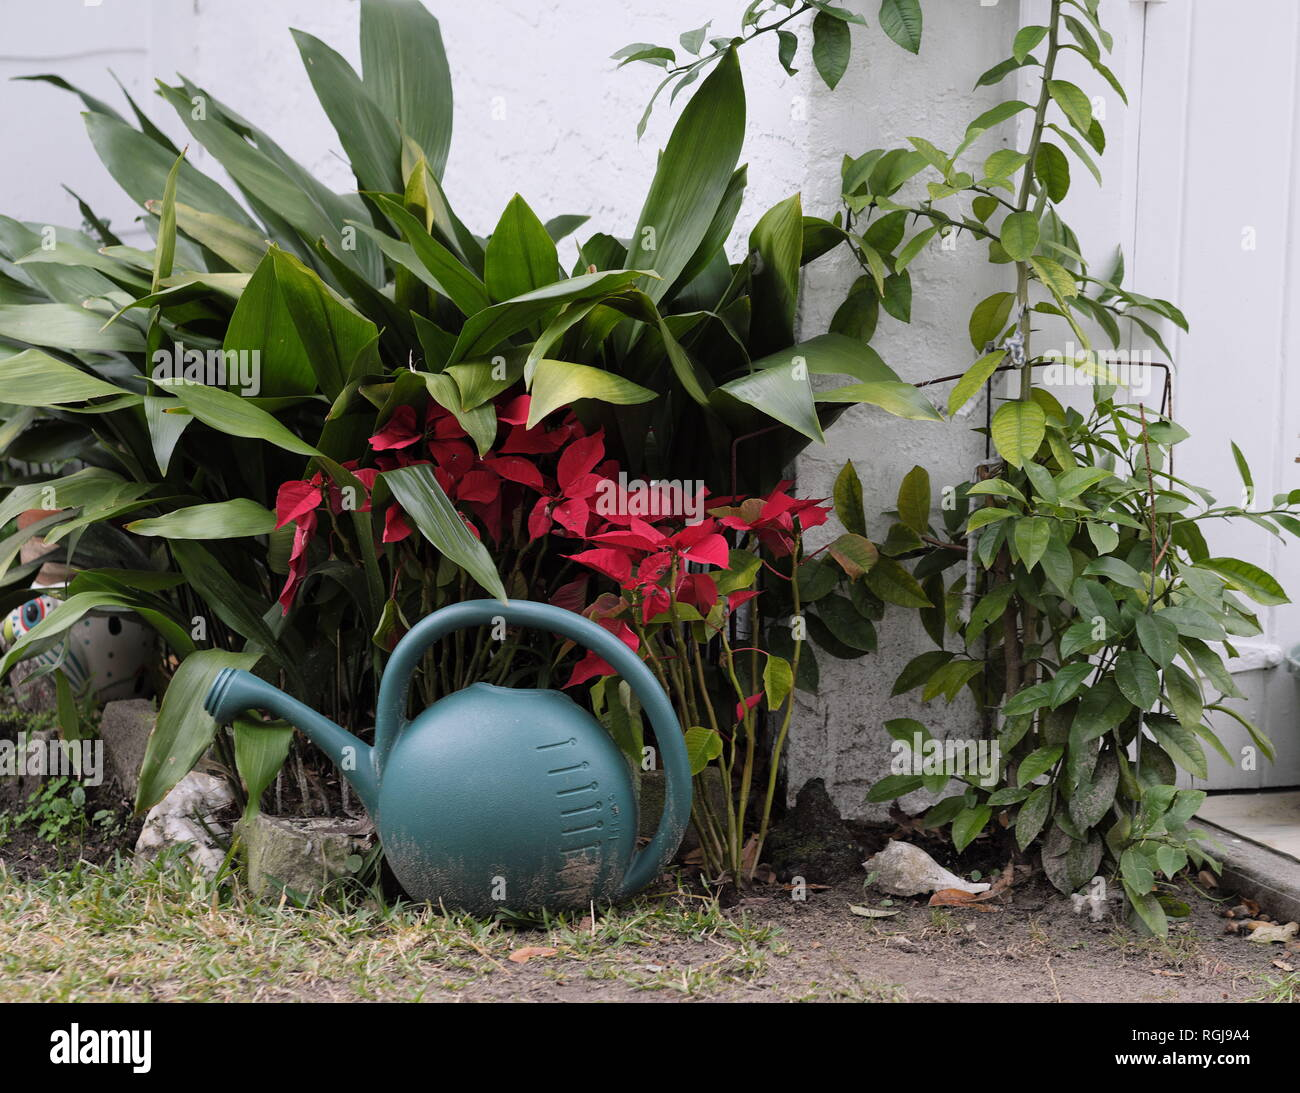 Wonderful Garden Arrangement Of Portable Watering Pot Against Red And Green Plants  With A Conch Shell